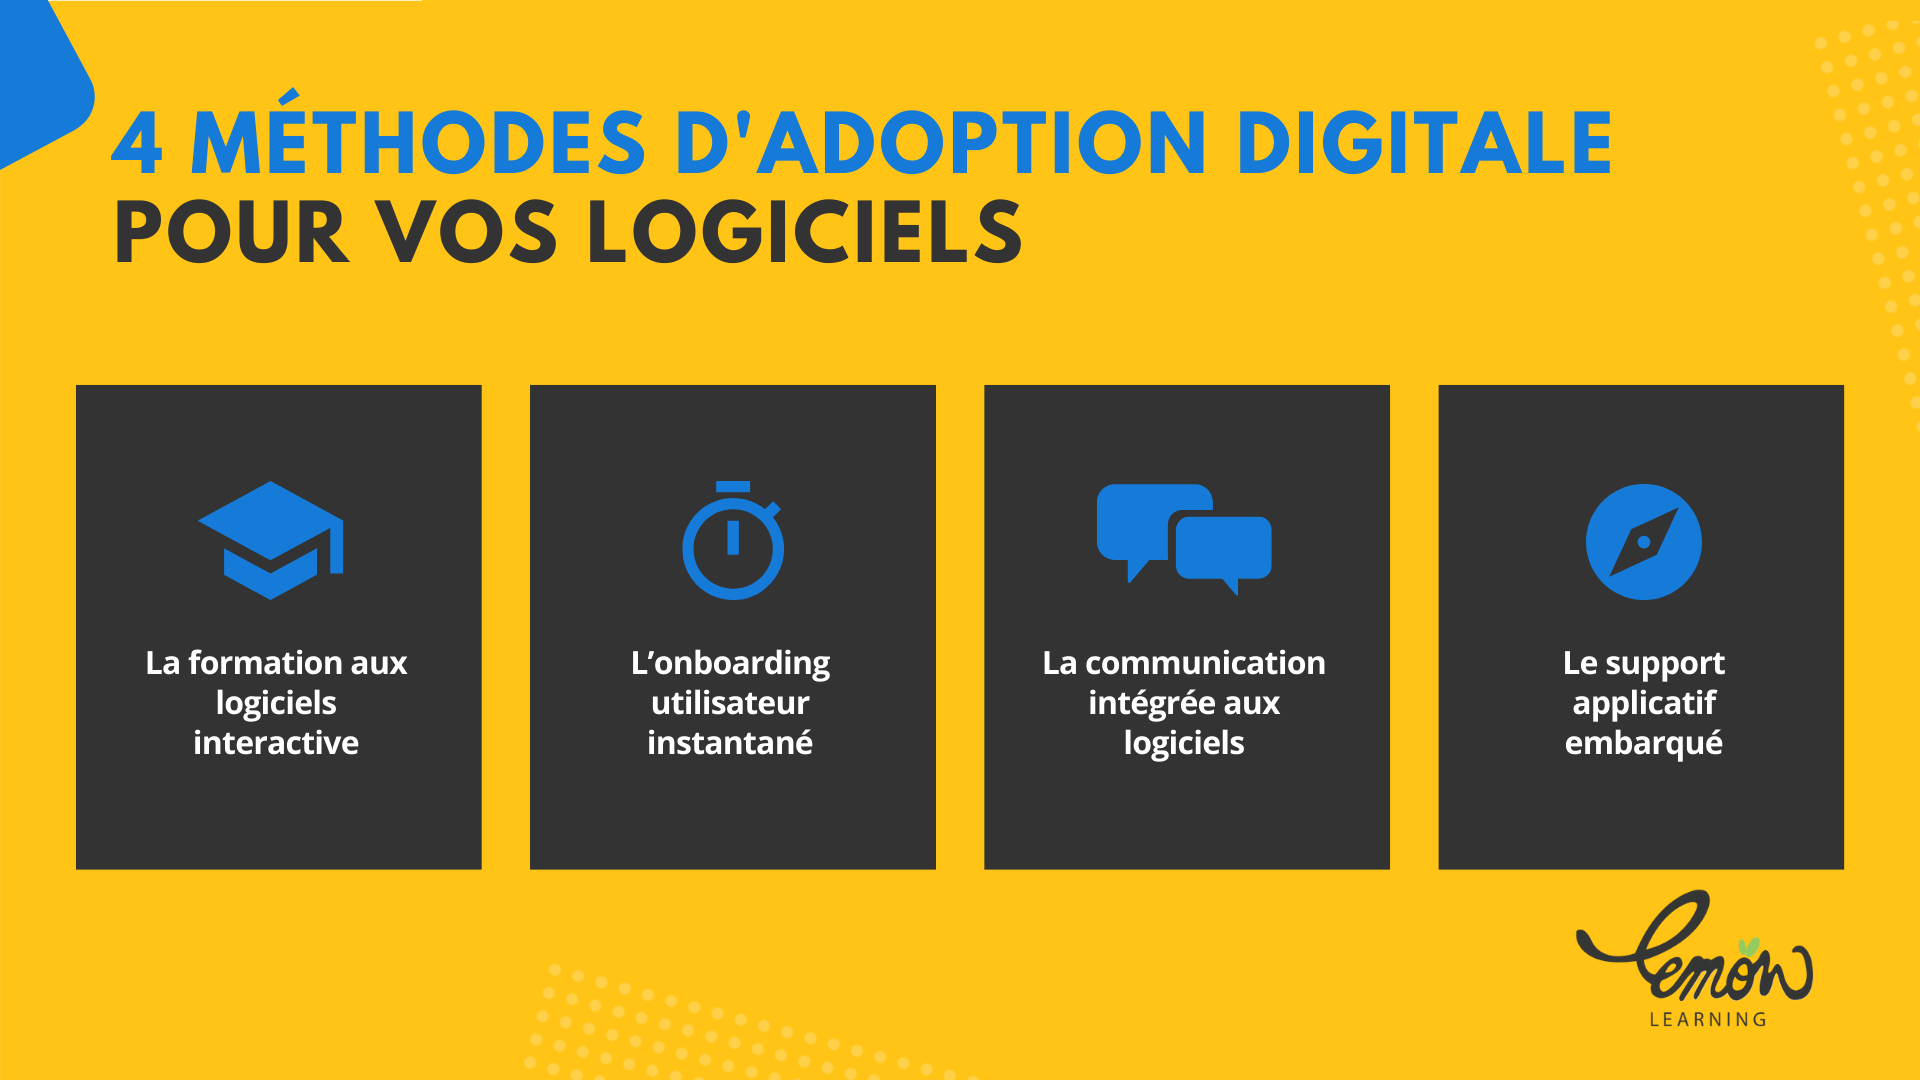 adoption digitale methode